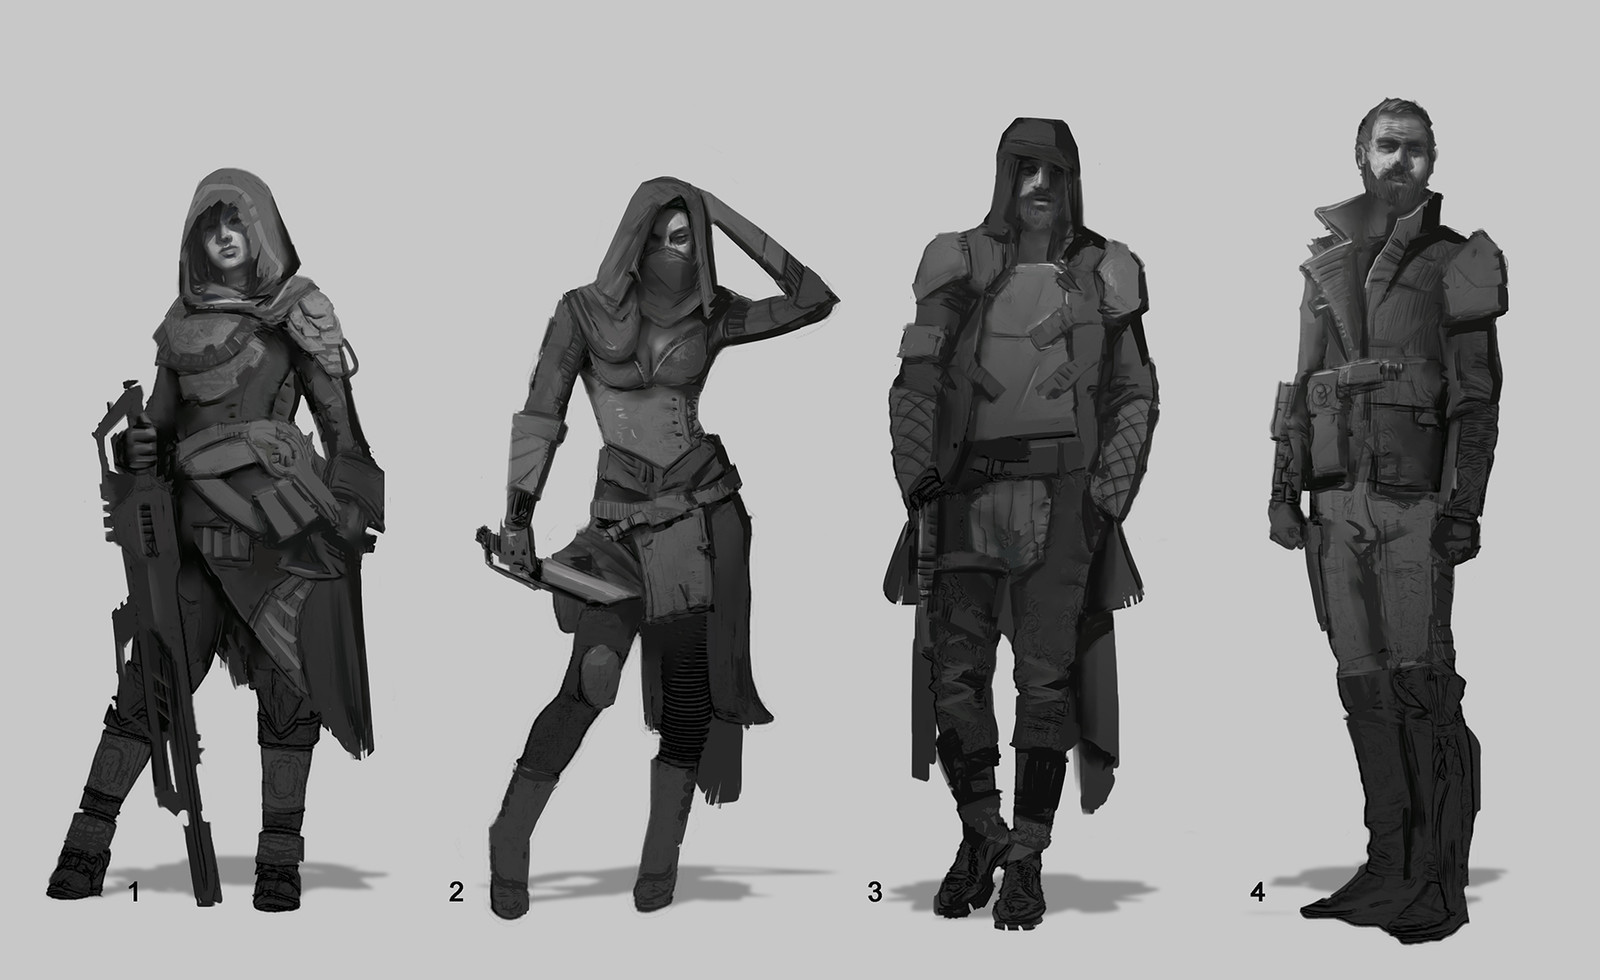 Scavengers sketches